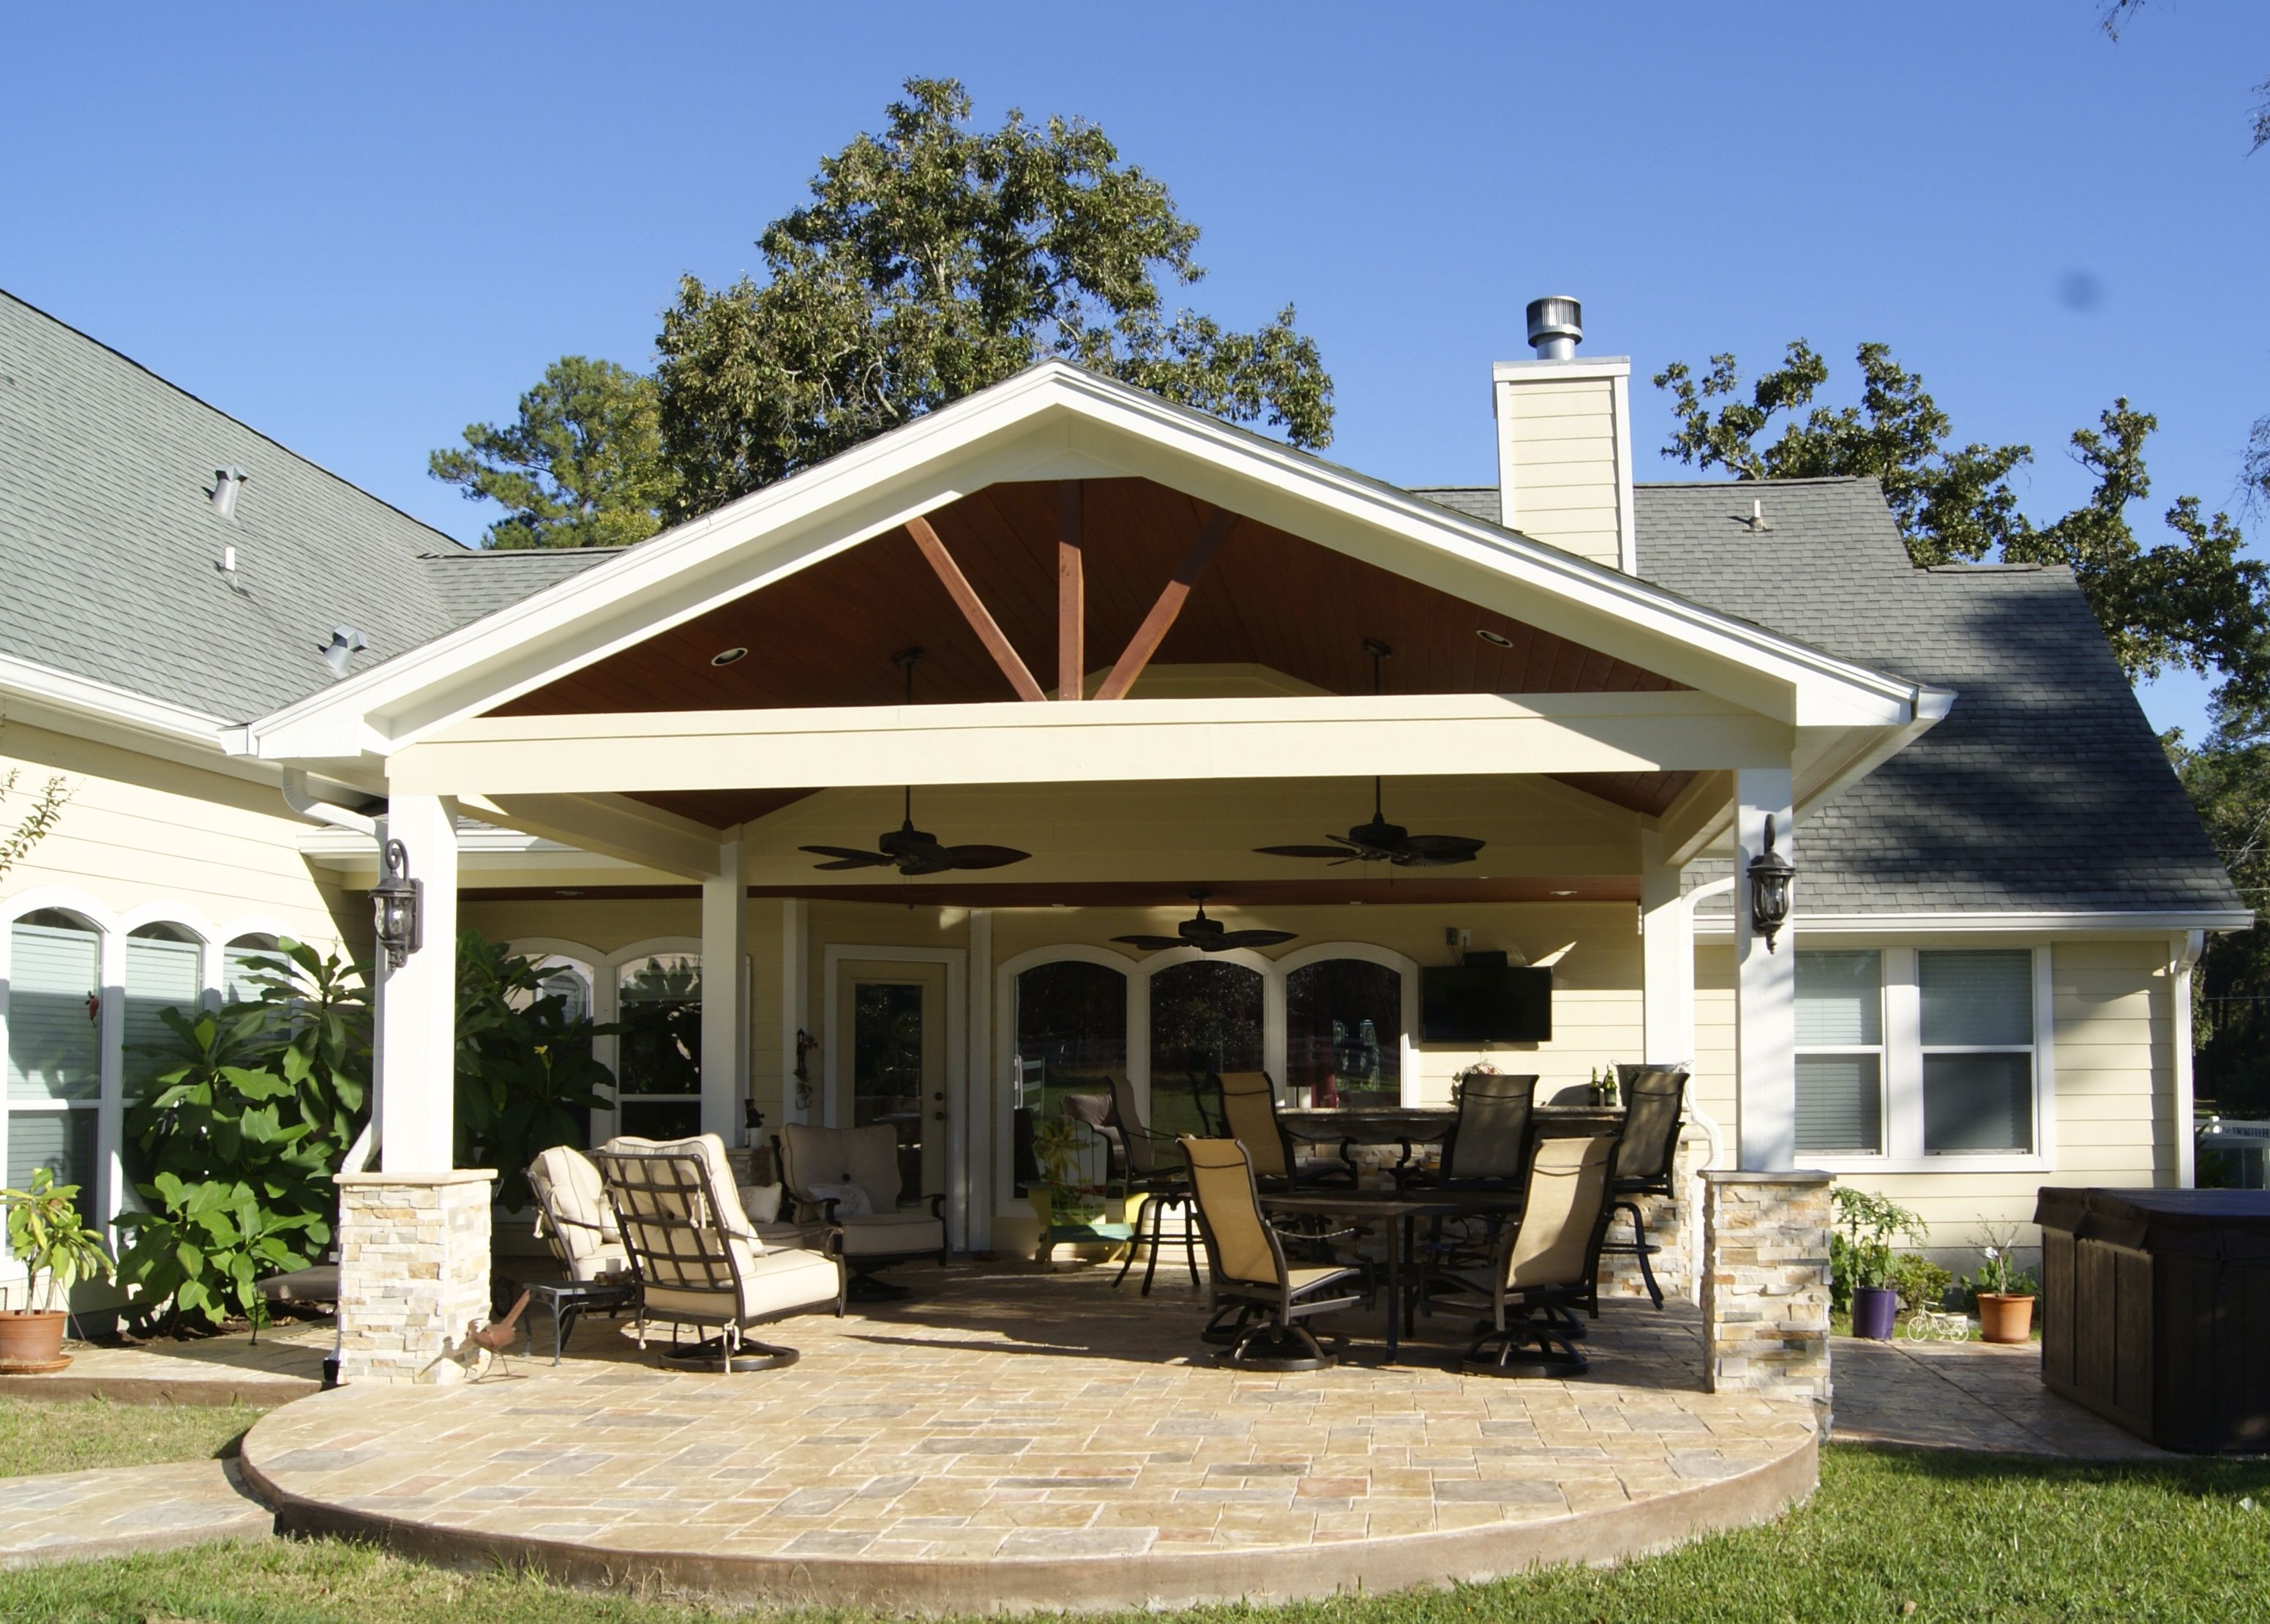 Delicieux Patio Cover With Stamped Concrete   Magnolia, TX. Back Patio Remodel Idea.